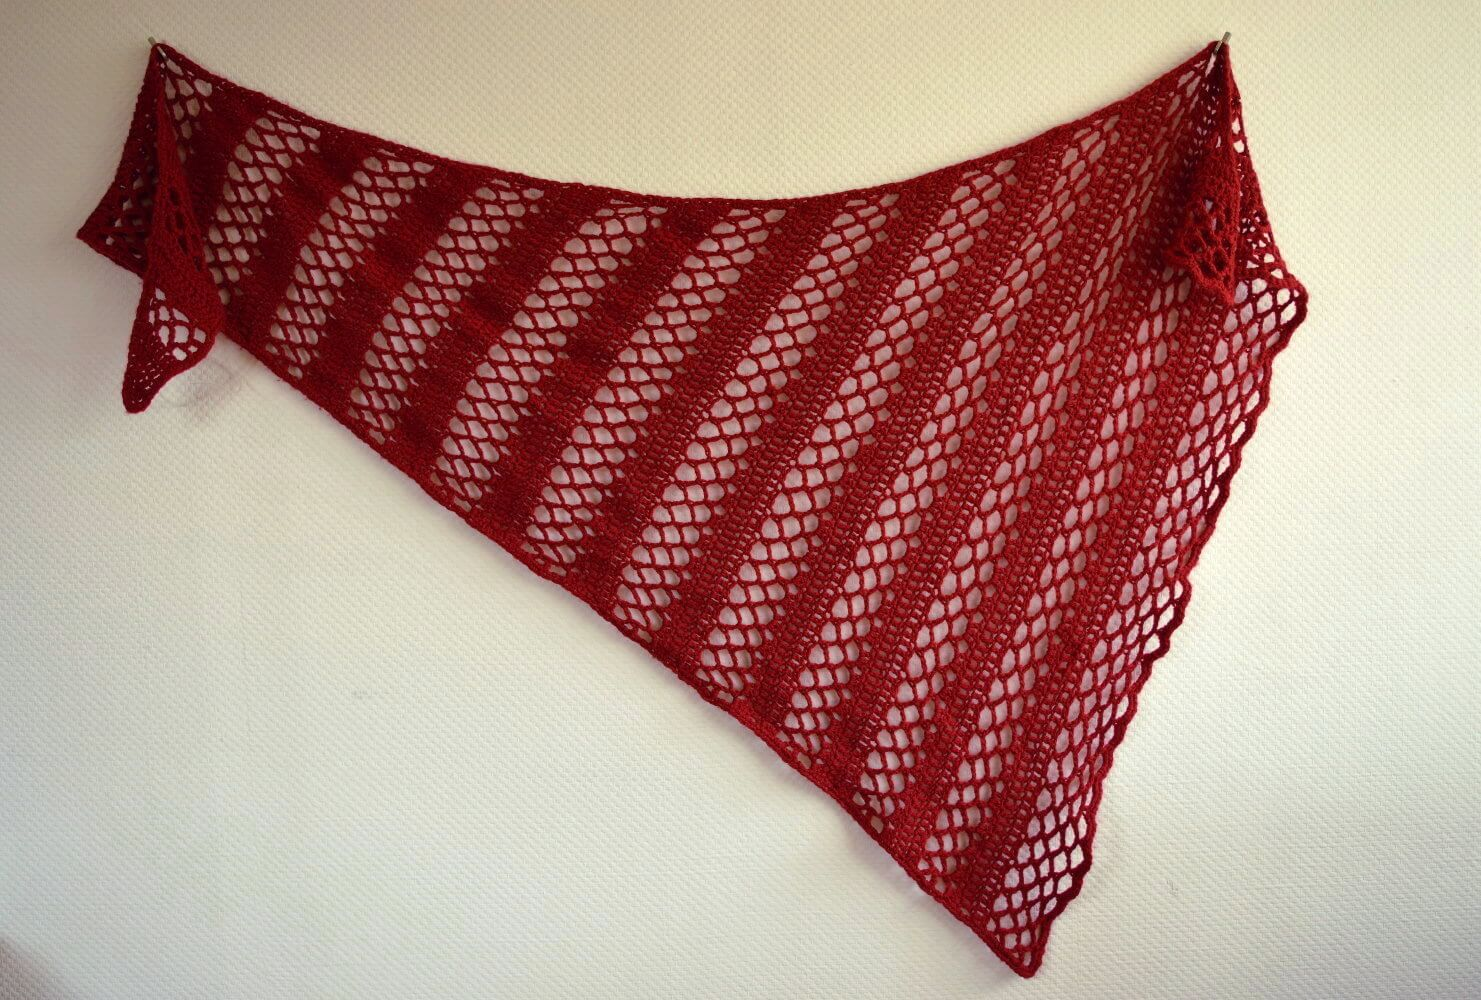 asymmetrical wedge shawl - La Visch Designs